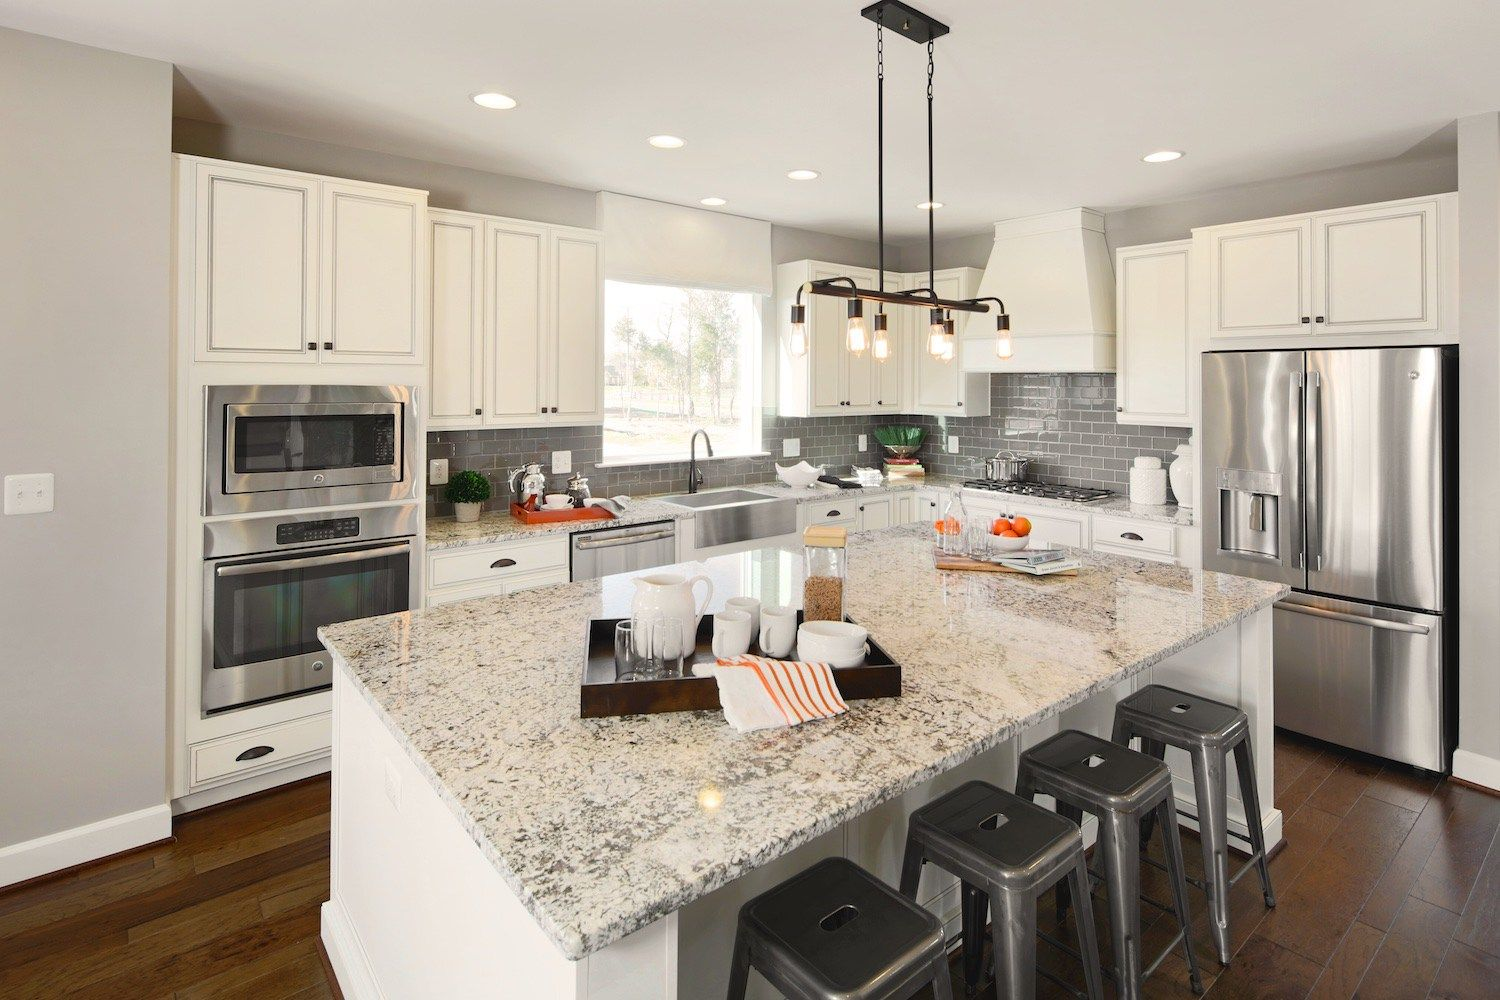 Best Beautiful White And Gray Kitchen With Granite Countertops 400 x 300